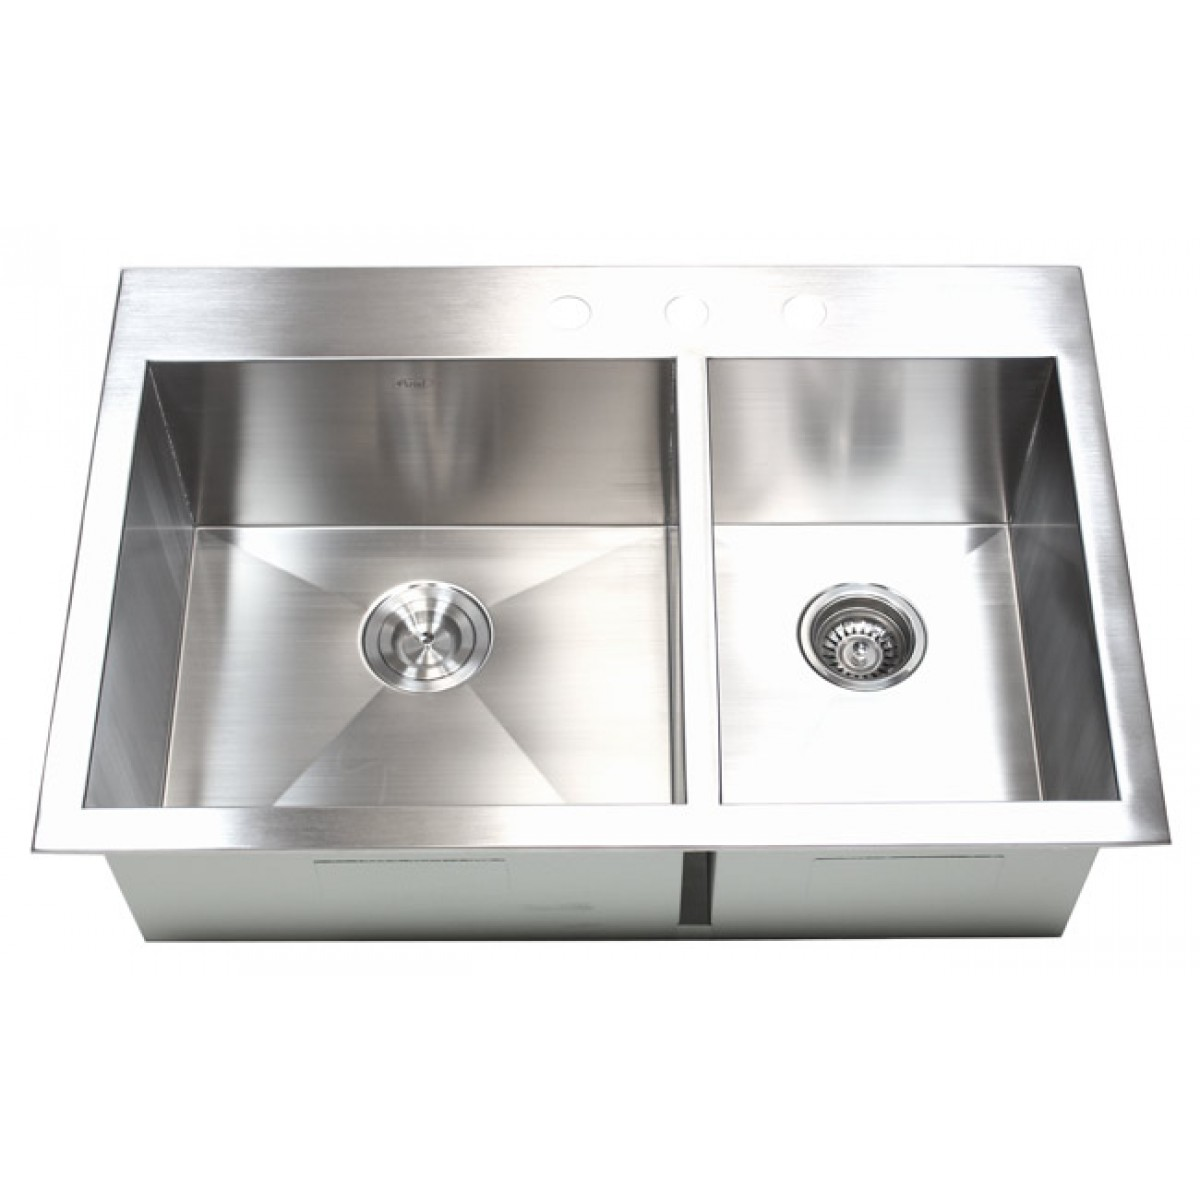 Best Kitchen Sink: 33 Inch Top-Mount / Drop-In Stainless Steel 60/40 Double